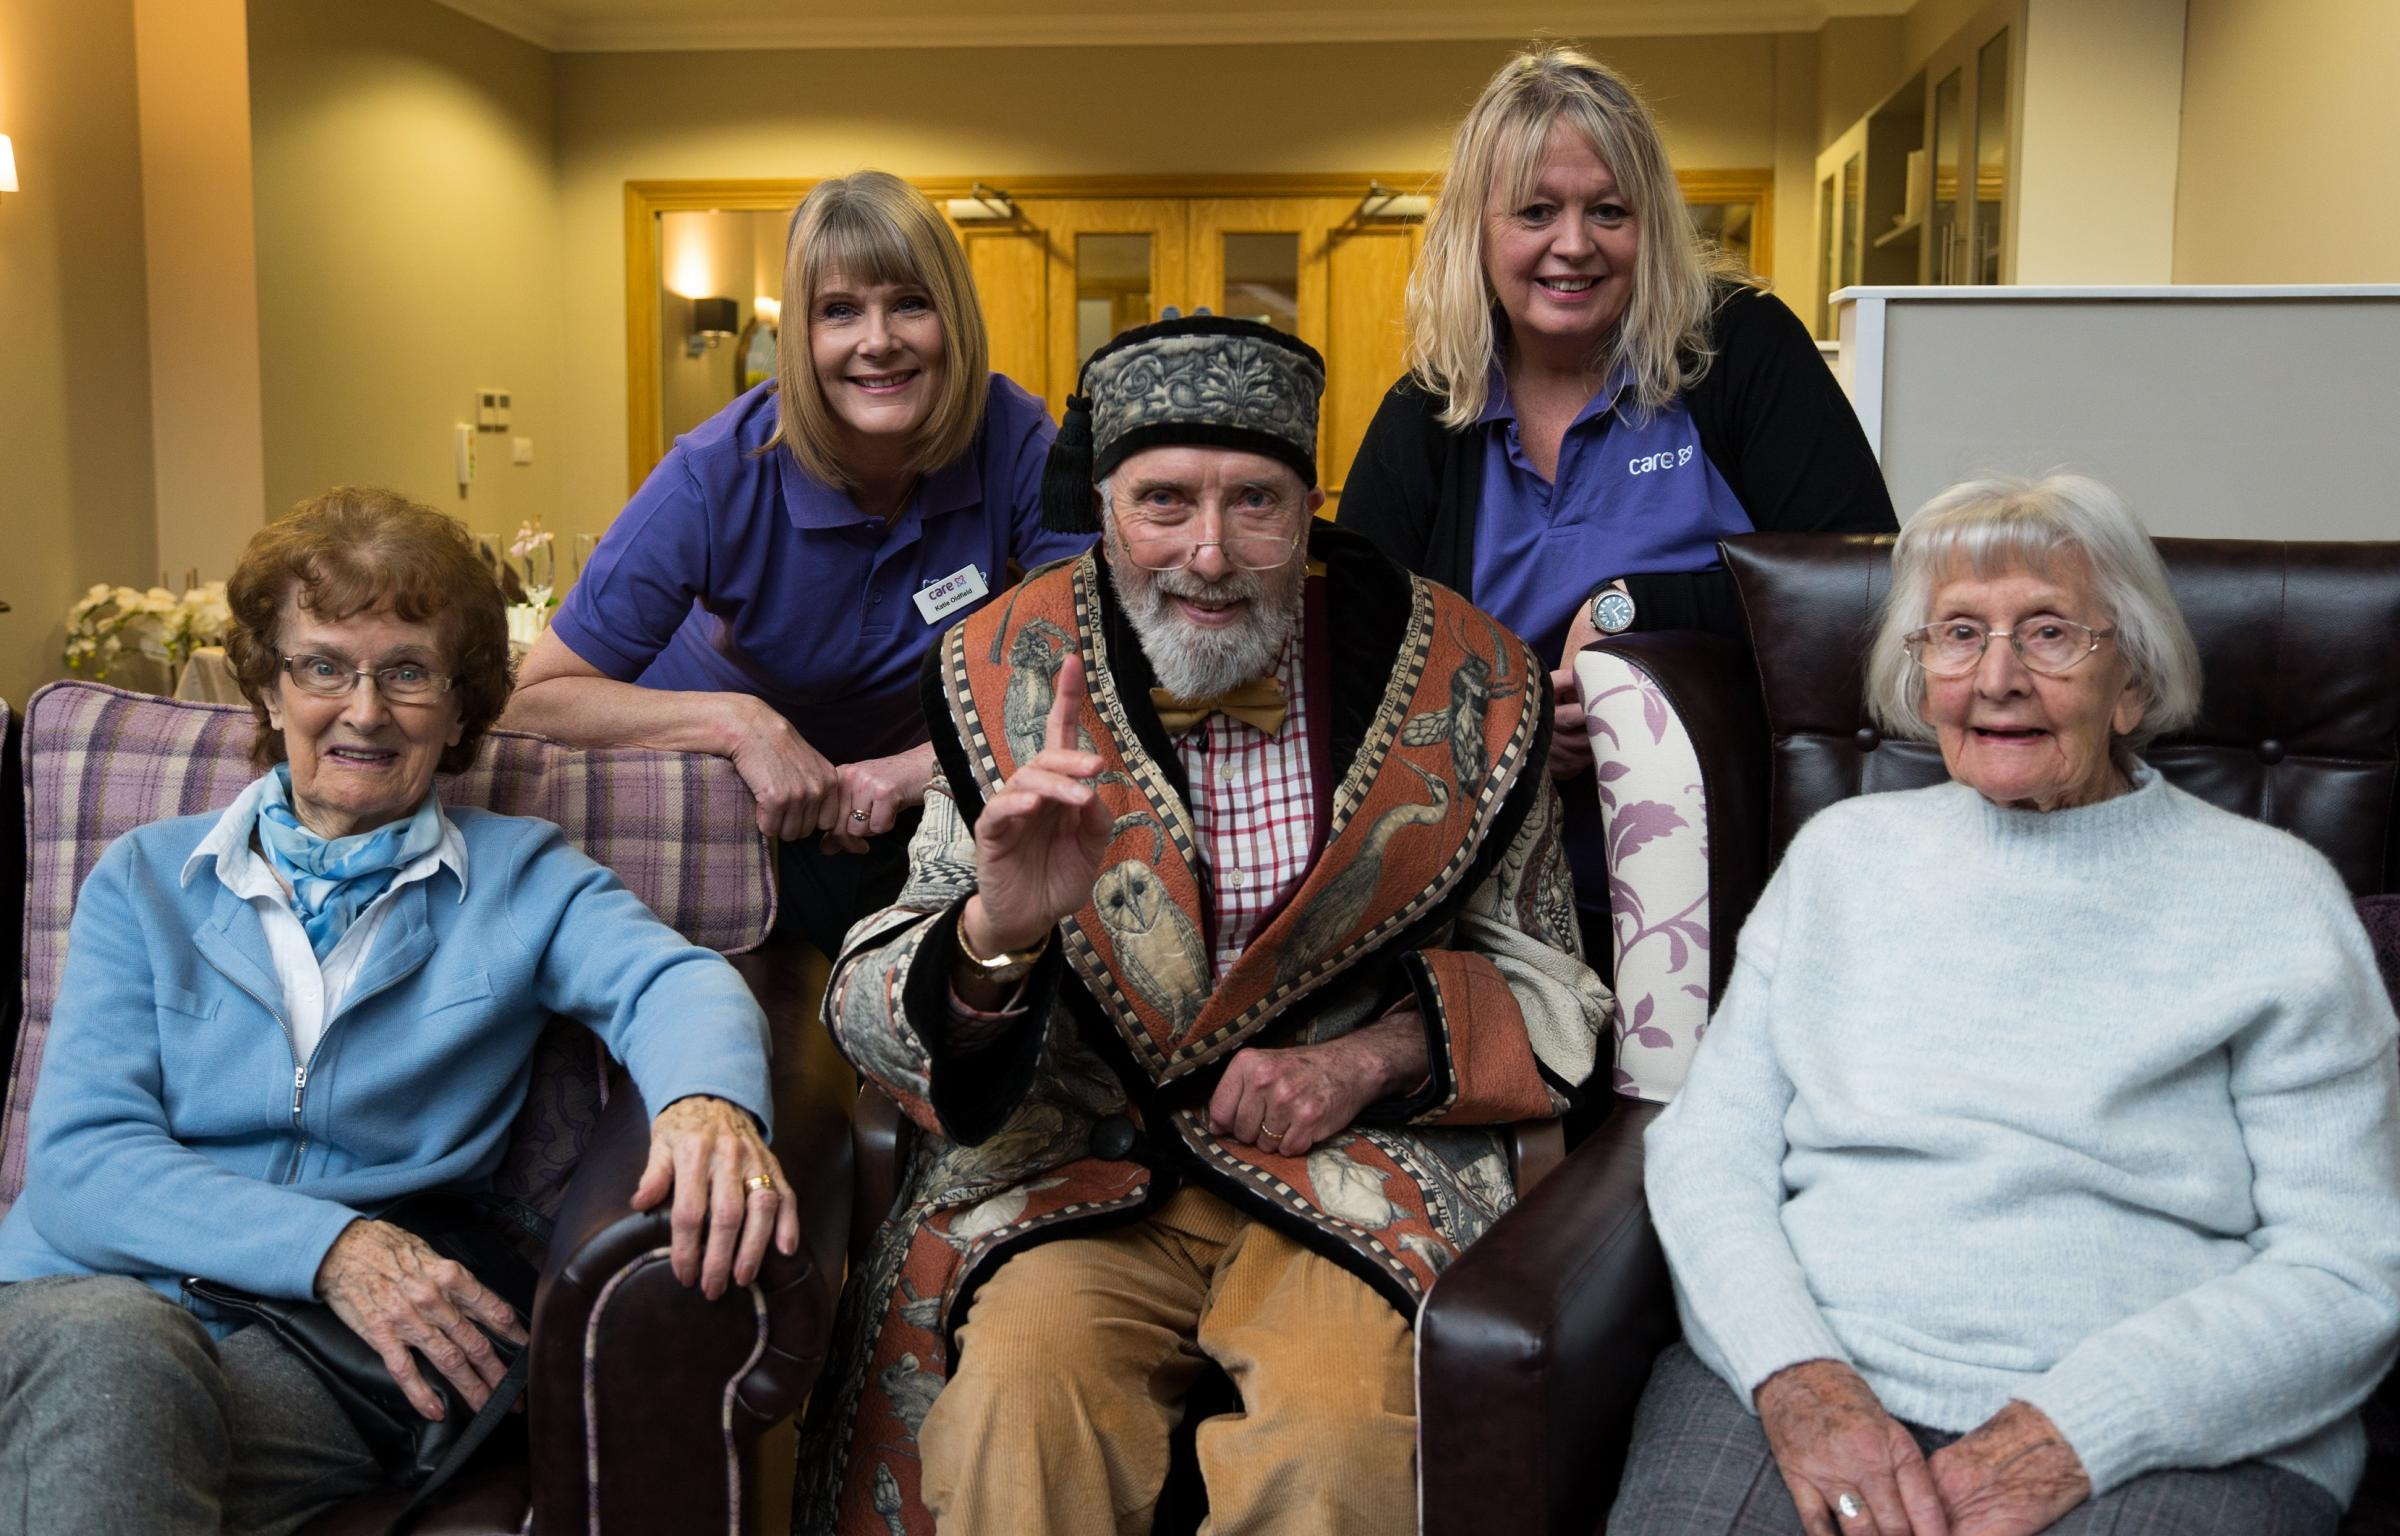 Care Home Hosts Famous Storyteller And Screens Special Film To Mark World Read Aloud Day